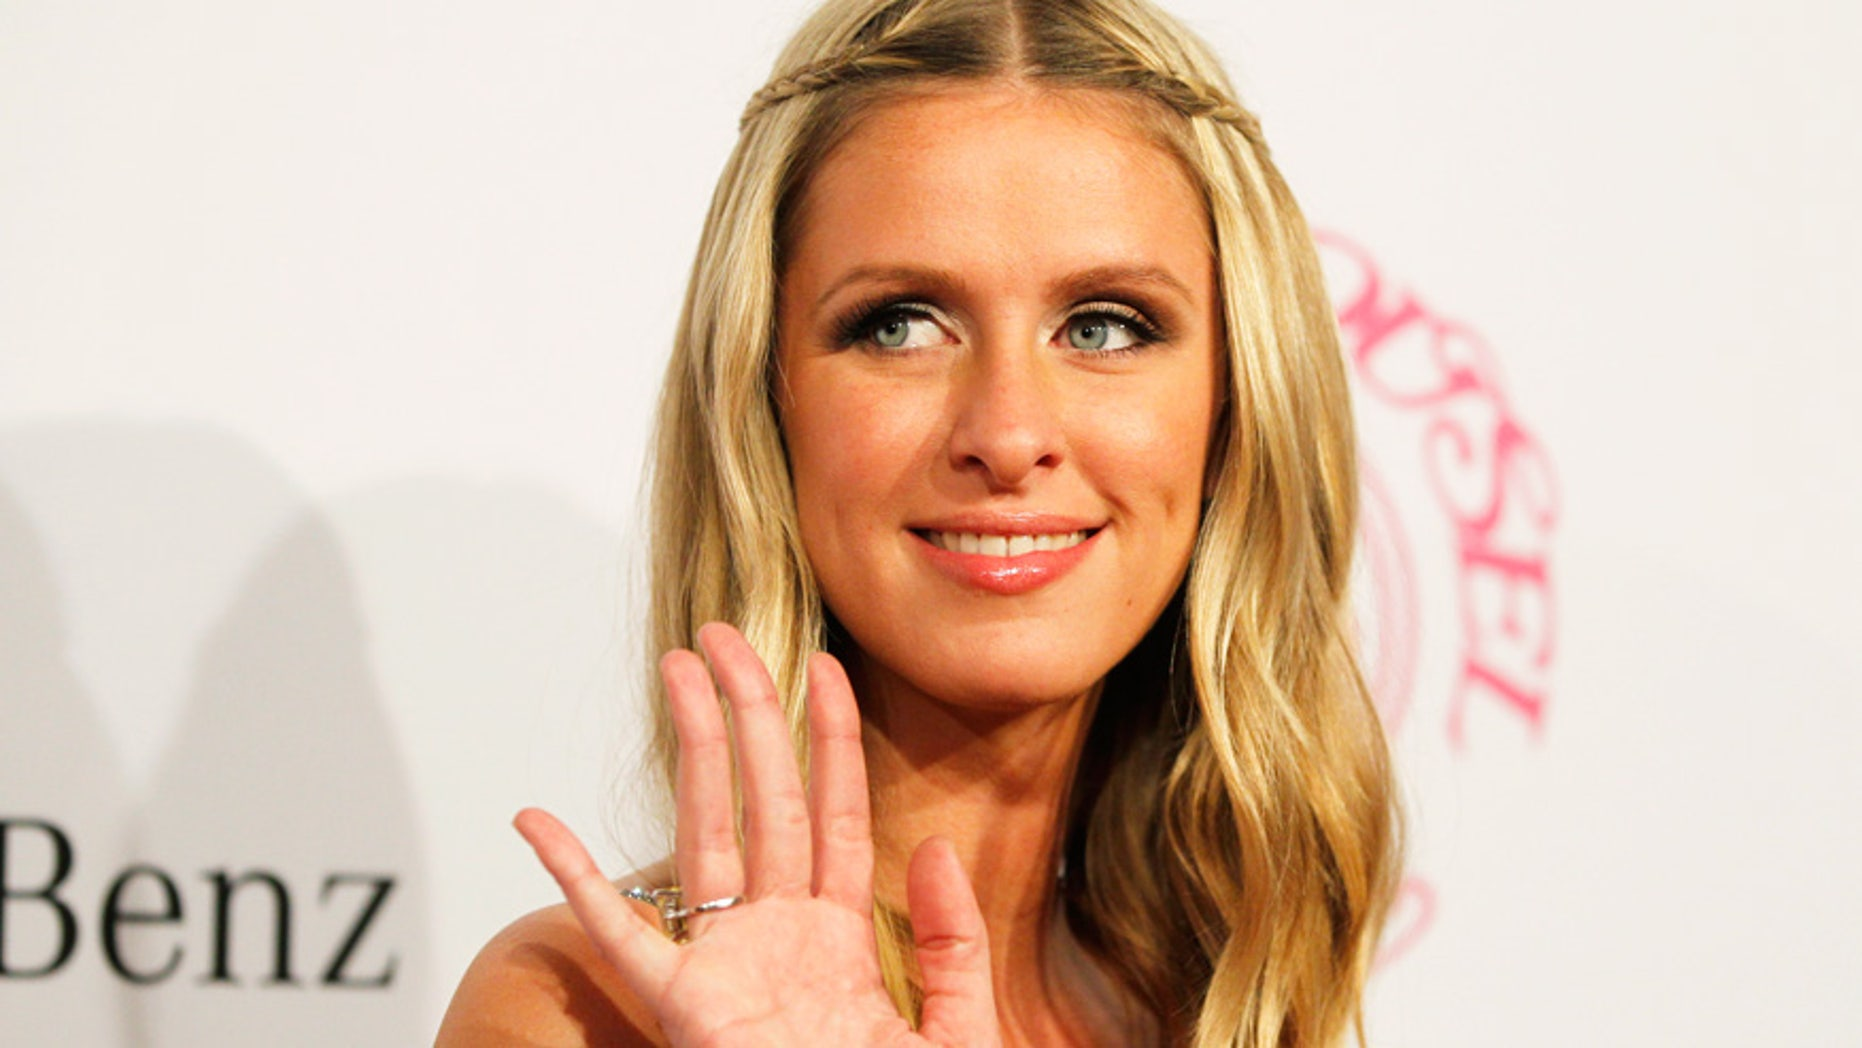 Nicky Hilton talks to Fox News about giving back.